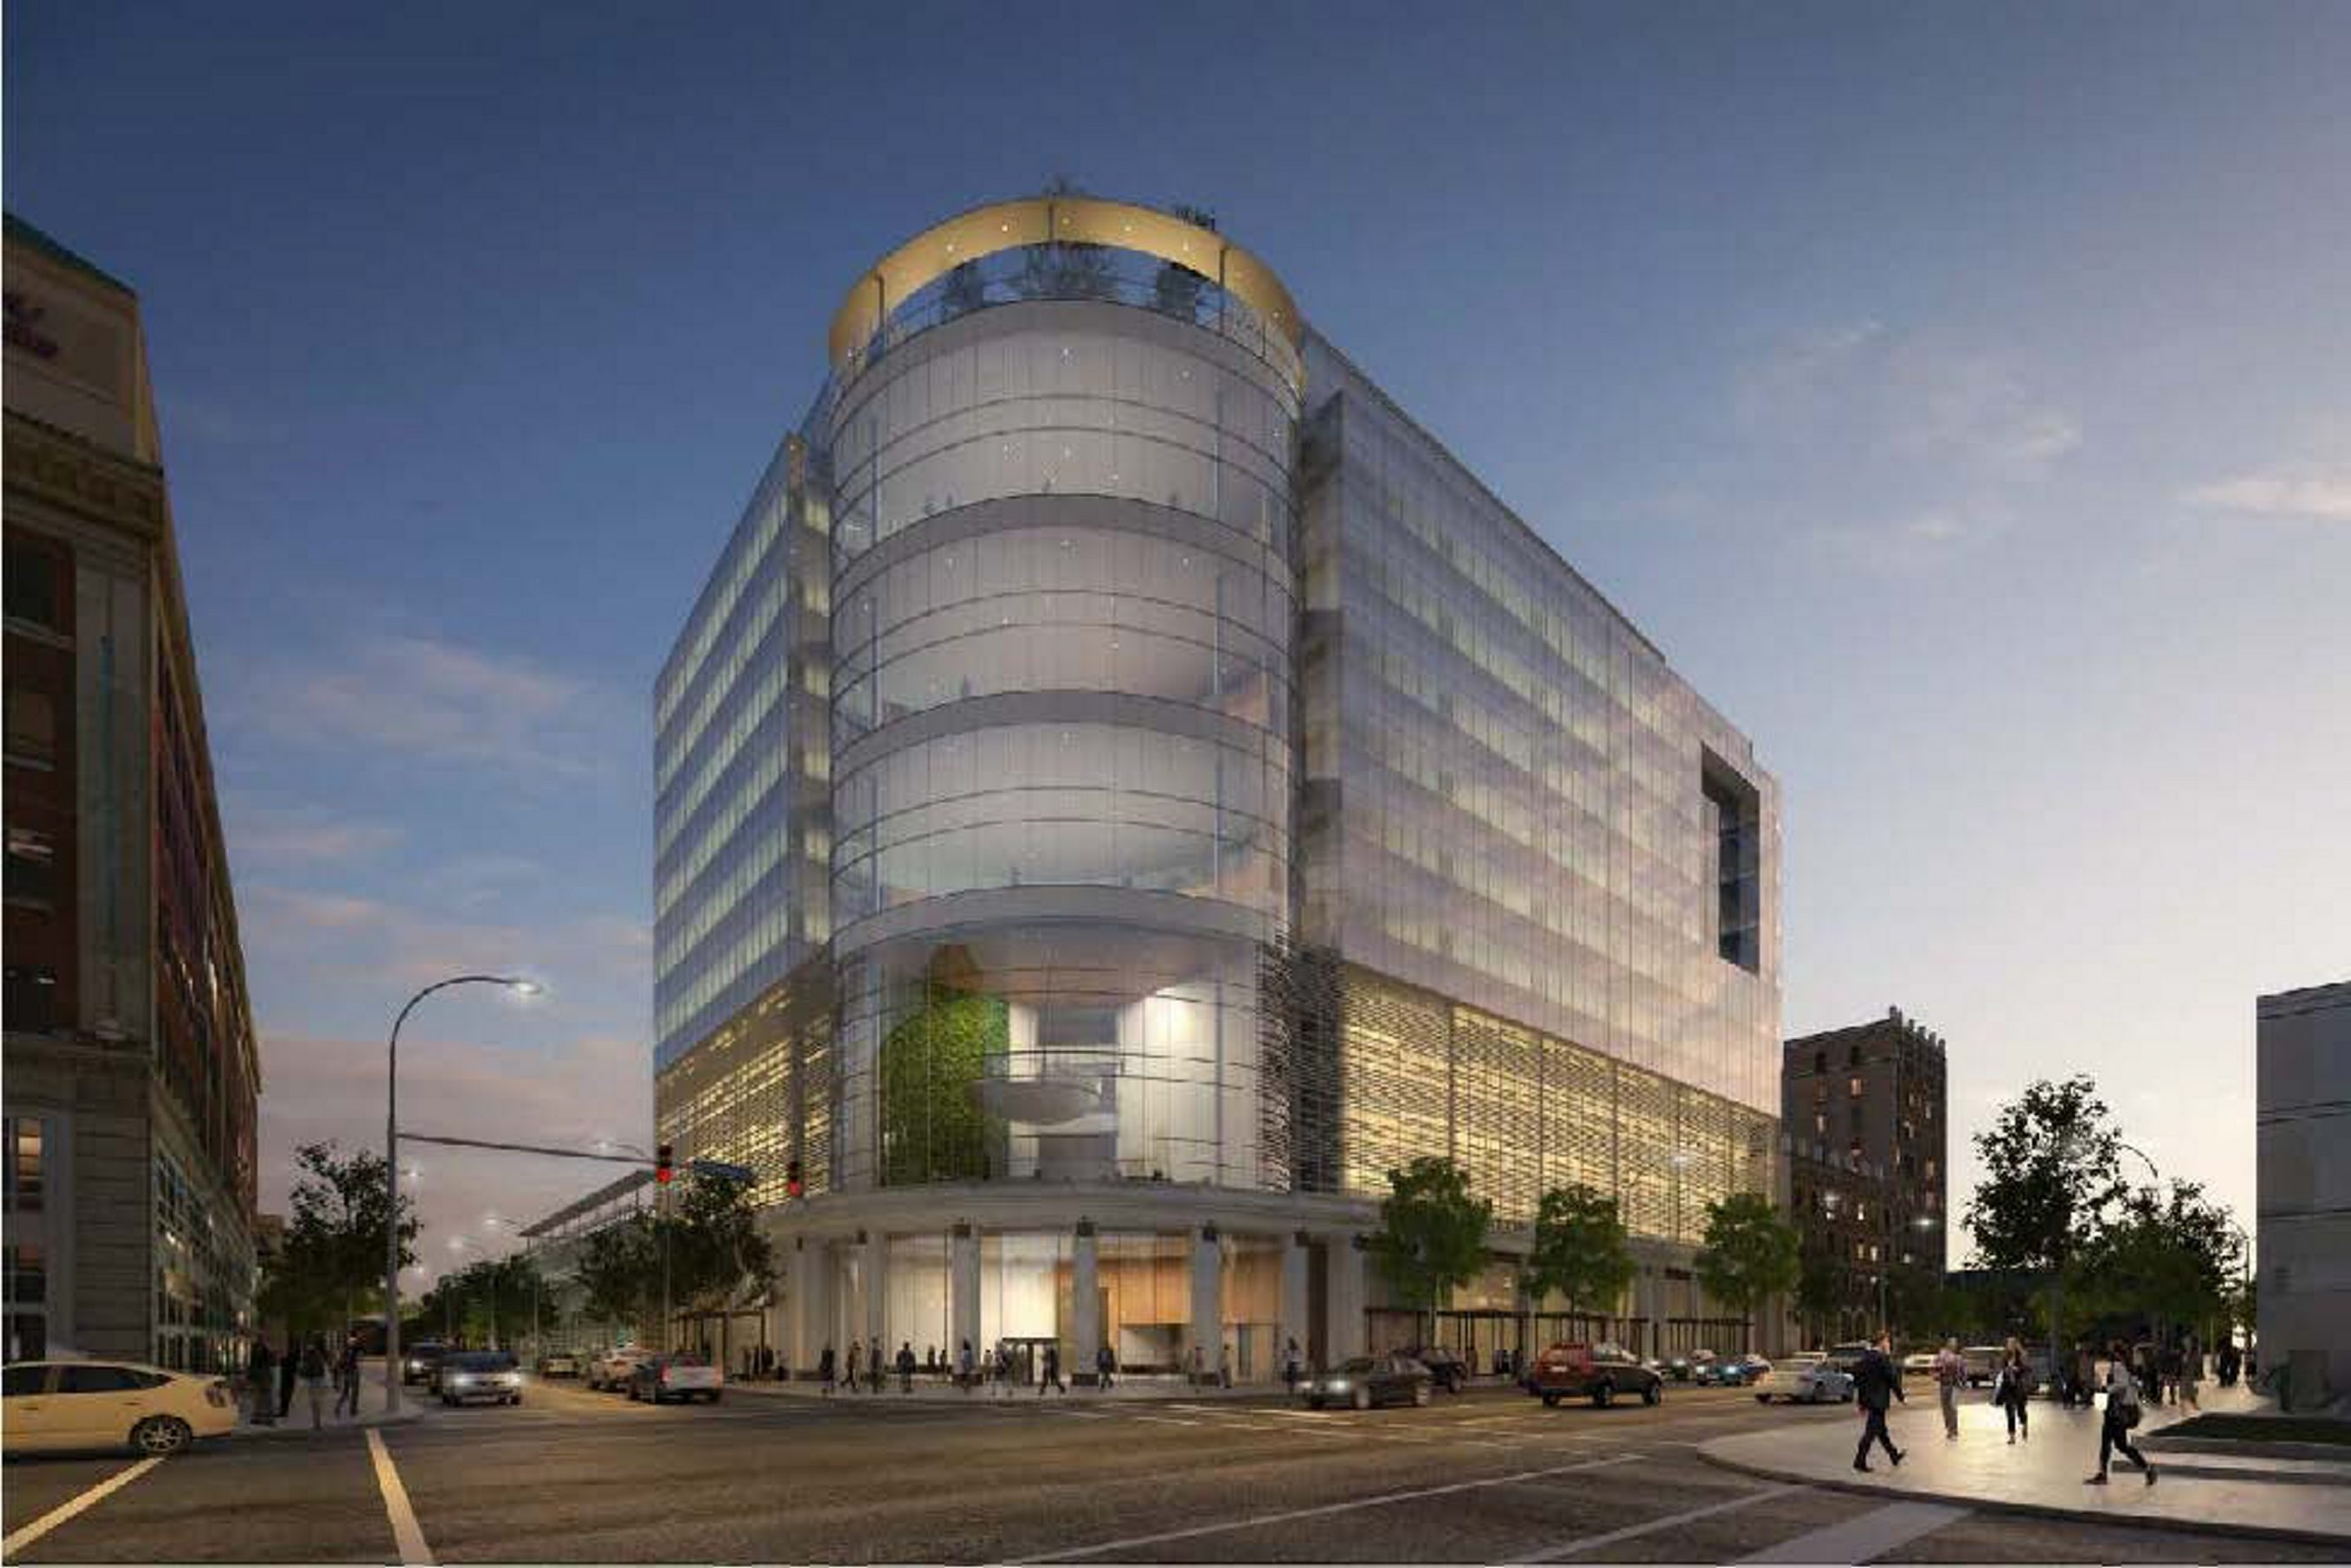 Uniland project, Delaware and Chippewa, includes hotel, office space, retail, and parking ramp.